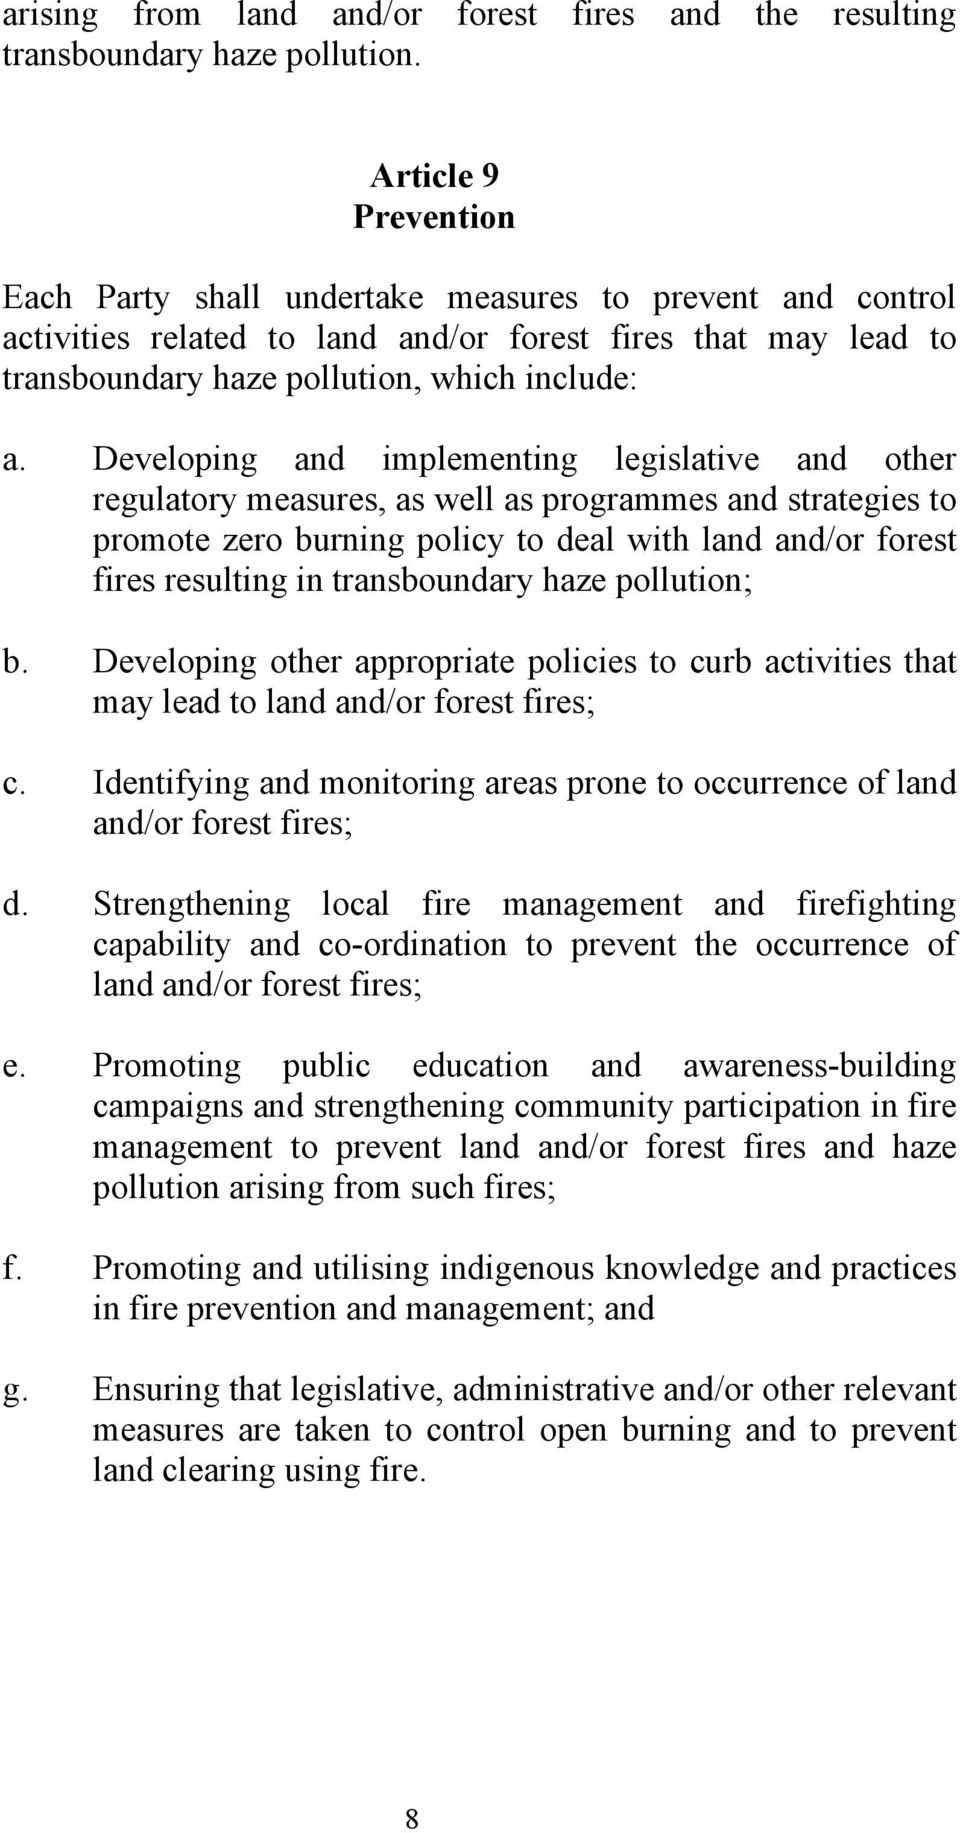 Developing and implementing legislative and other regulatory measures, as well as programmes and strategies to promote zero burning policy to deal with land and/or forest fires resulting in